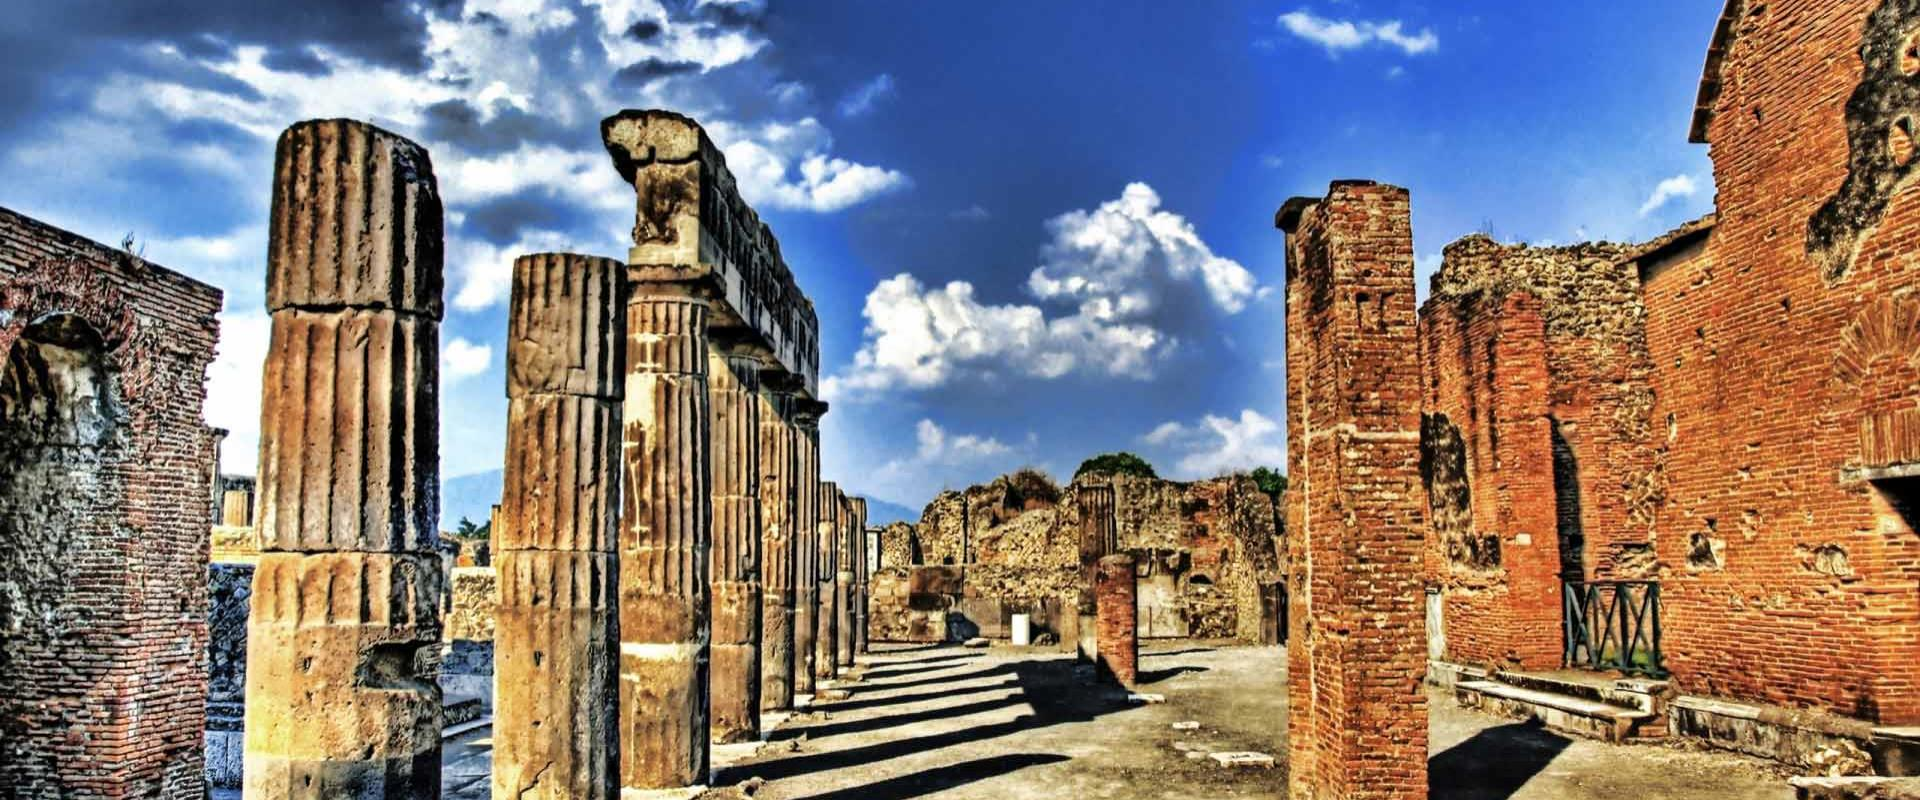 Discover the archaeological site of Pompeii and reserve your room at the BW Signature Collection Hotel Paradiso!